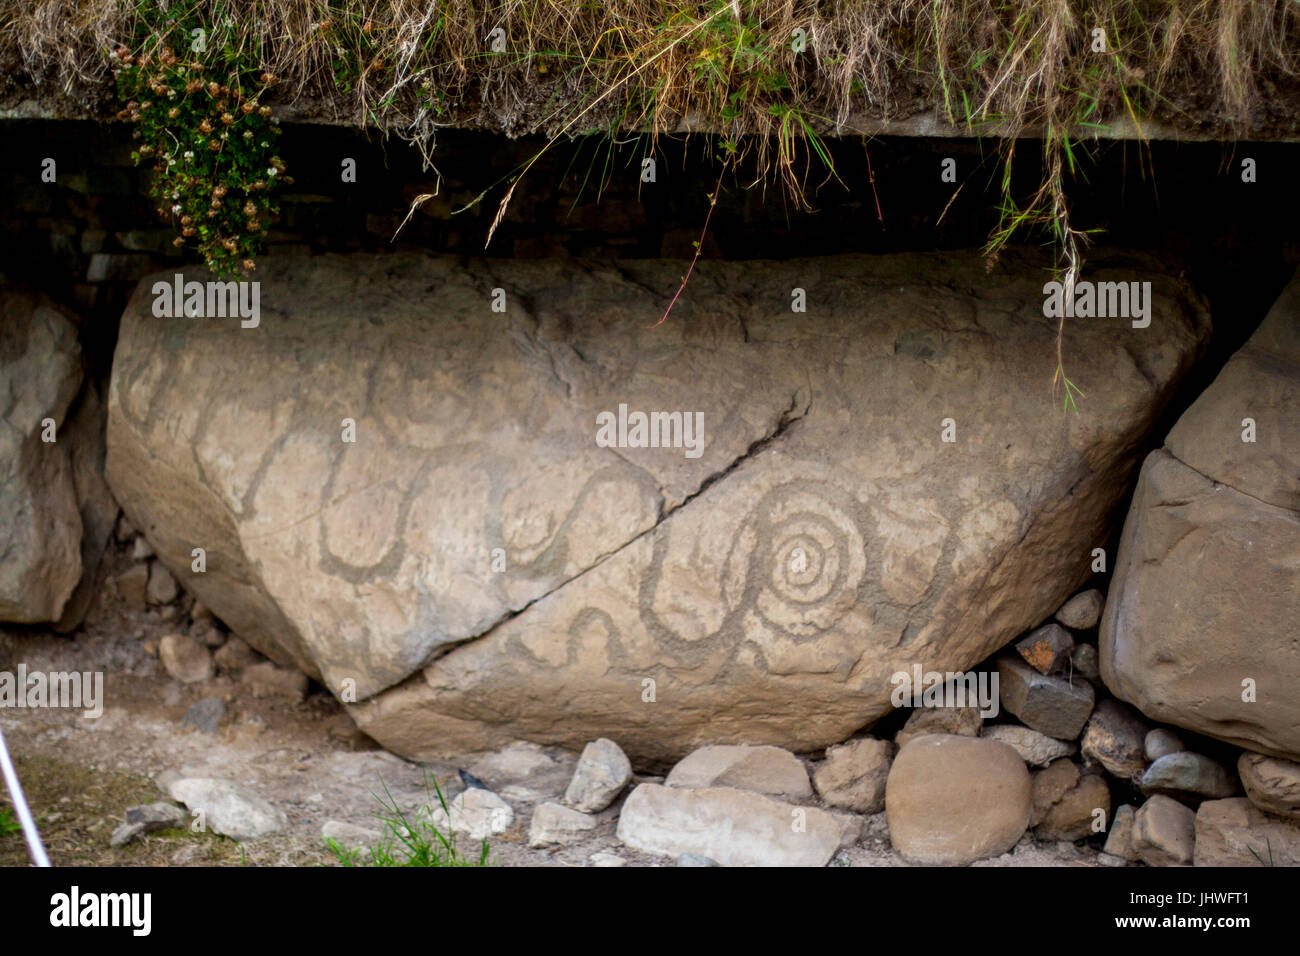 Neolithic art displayed on large stones, Kerbstones with spirals and lozenges at Knowth, Boyne Valley, Meath Ireland - Stock Image